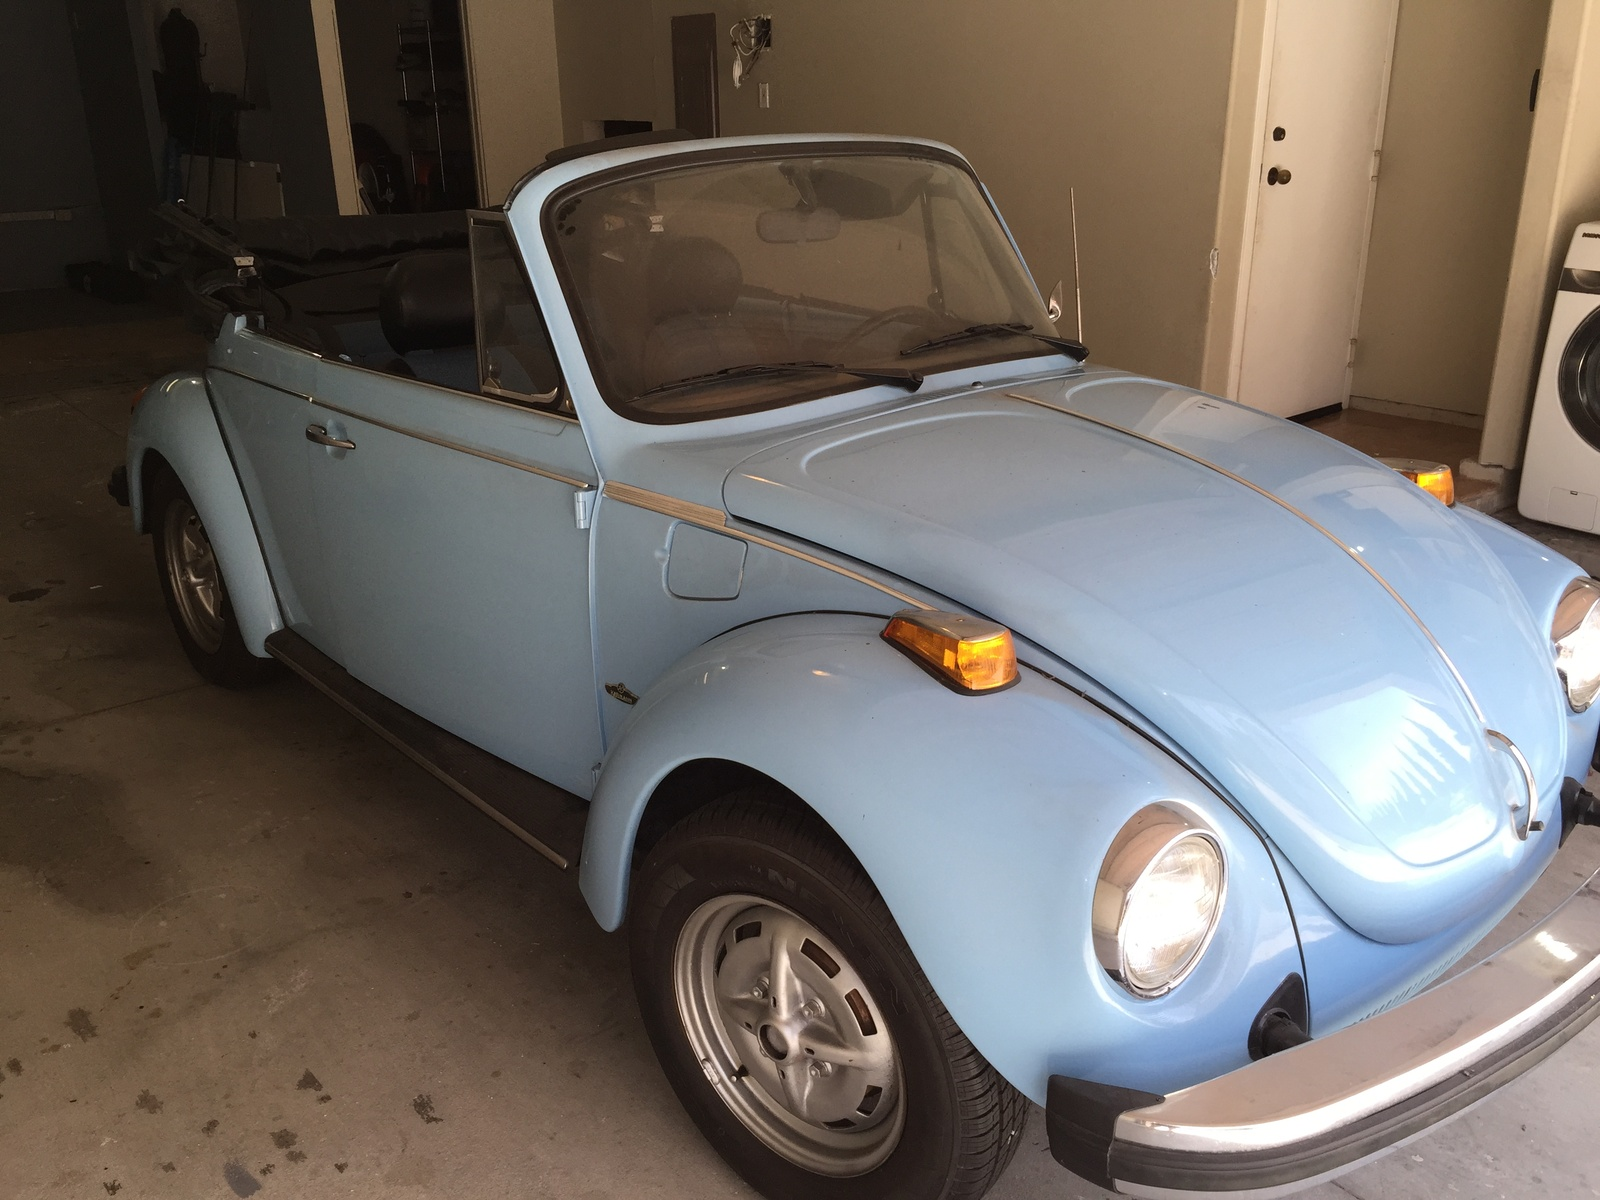 Volkswagen Beetle Questions - What is a reasonable price for my 1979 ...